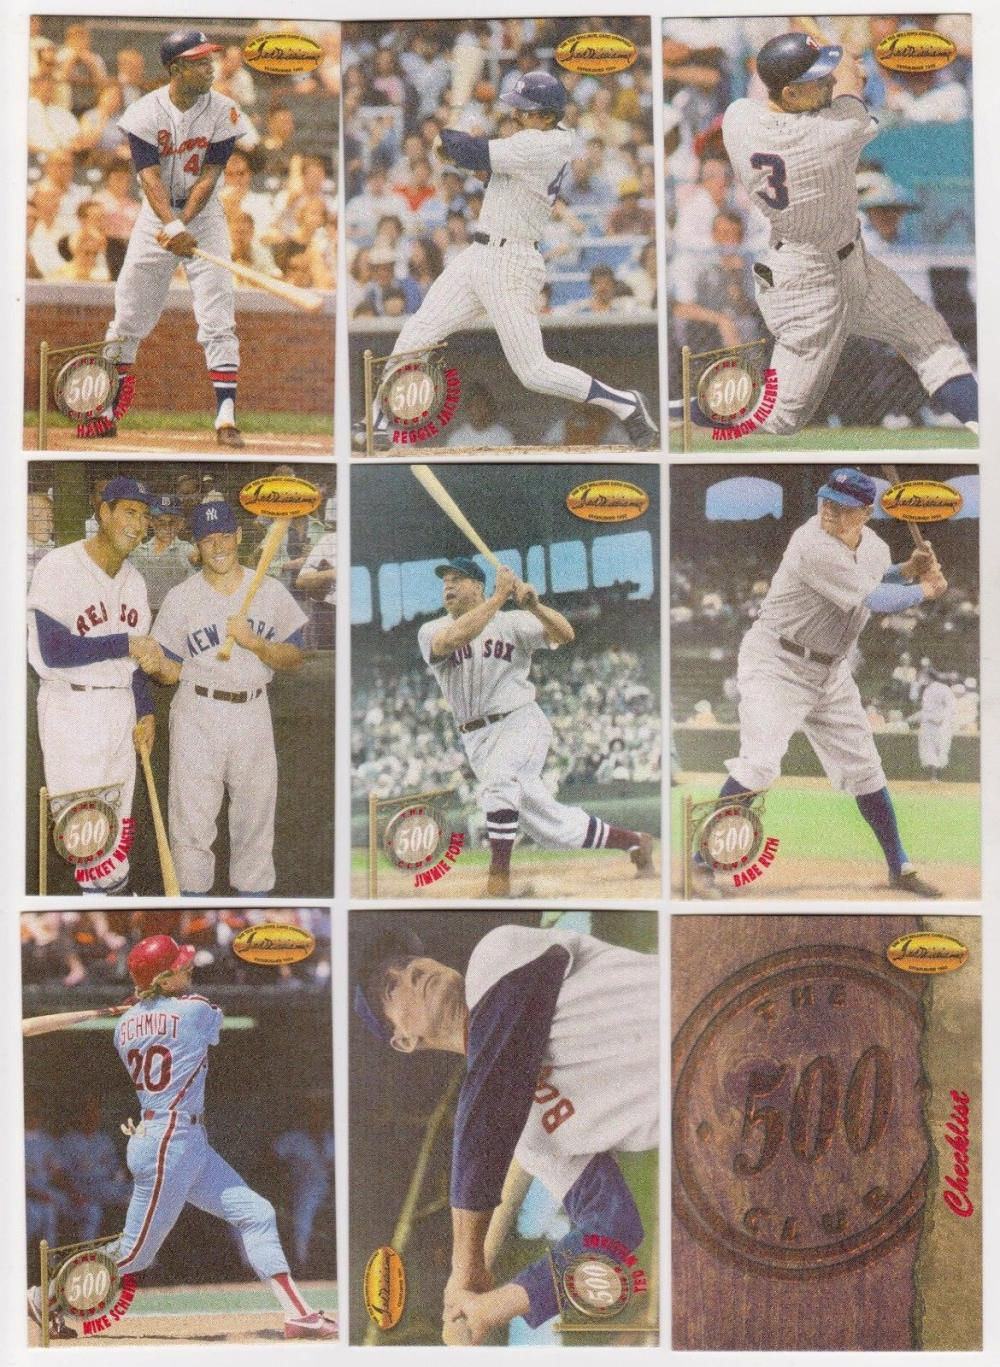 1994 Ted Williams Co. 500 Home Run Club RED VERSION 9 Card Insert Set